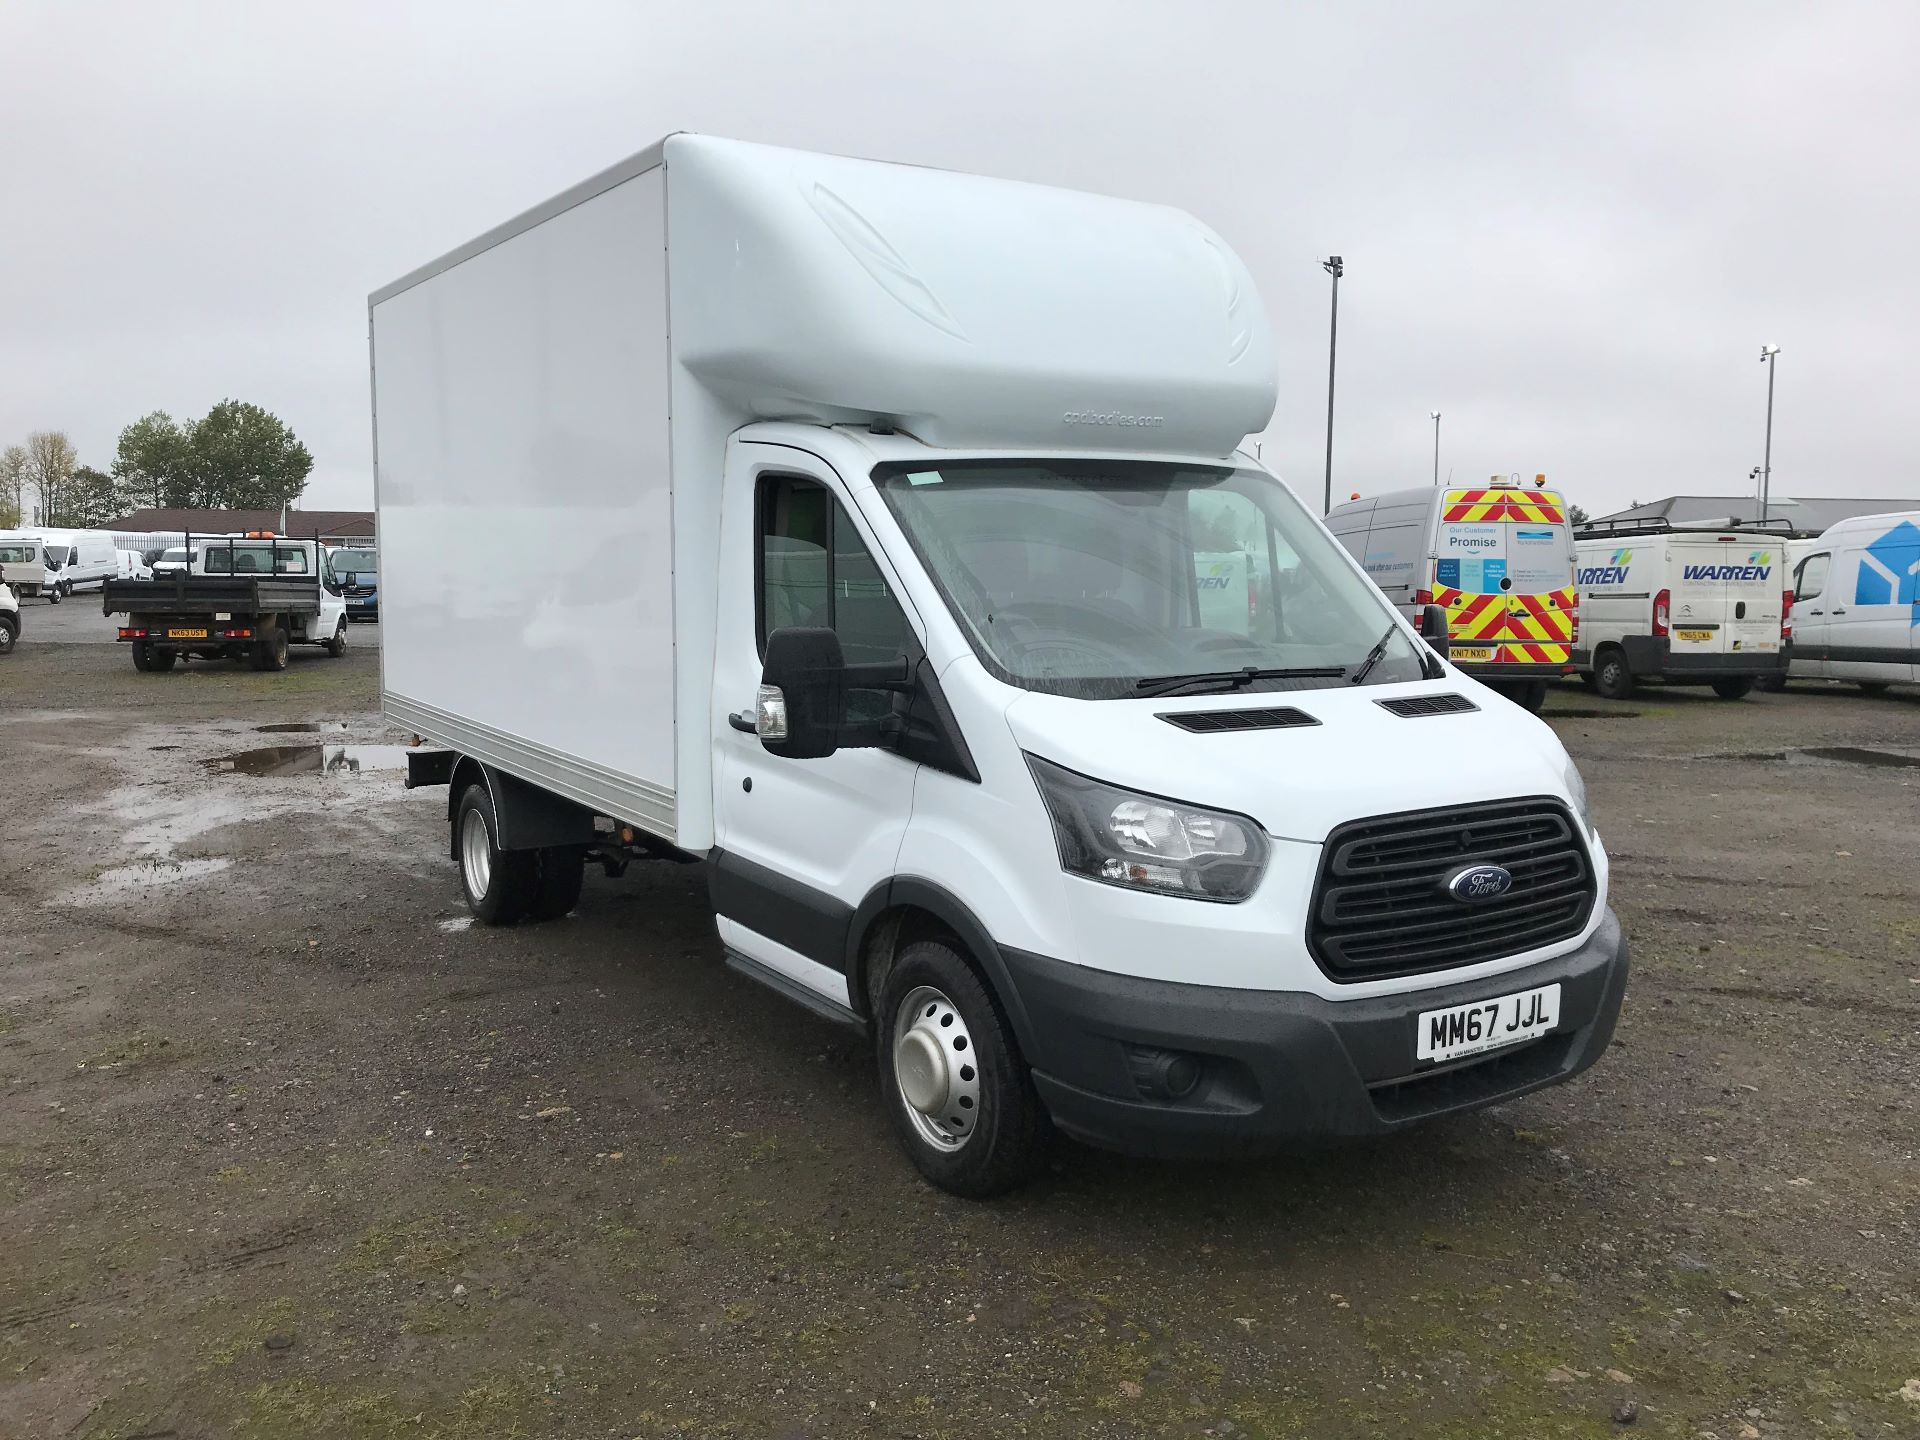 2018 Ford Transit 2.0 Tdci 130Ps One Stop Luton Van (MM67JJL)